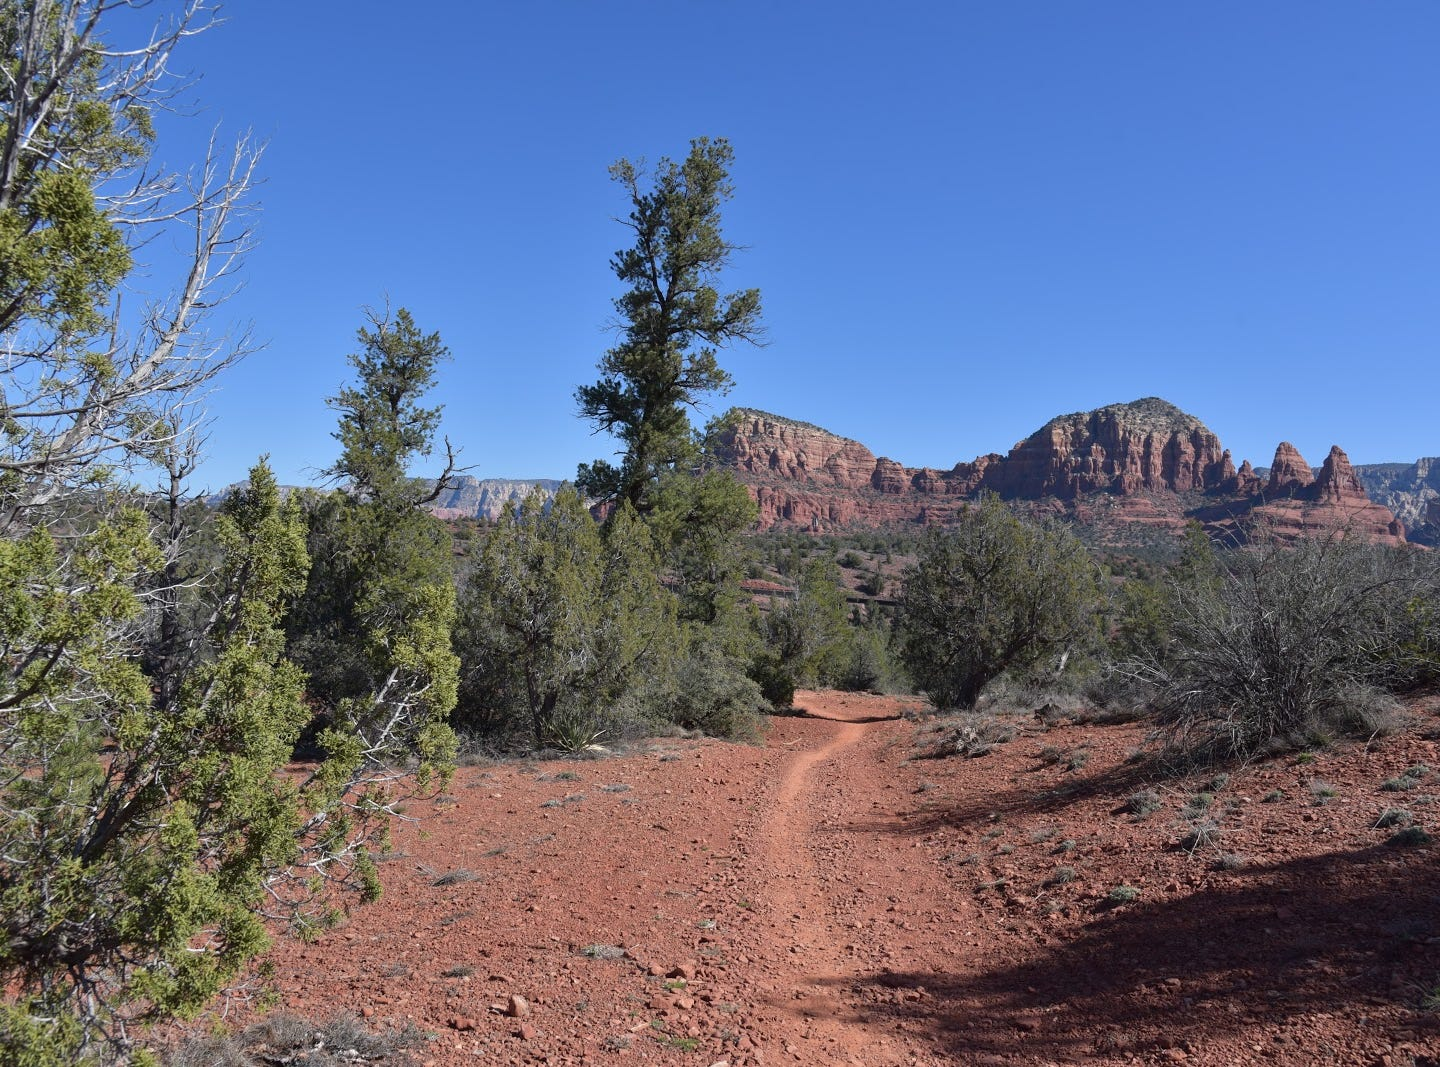 The Two Nuns rock formation (far right) seen from the HT Trail.